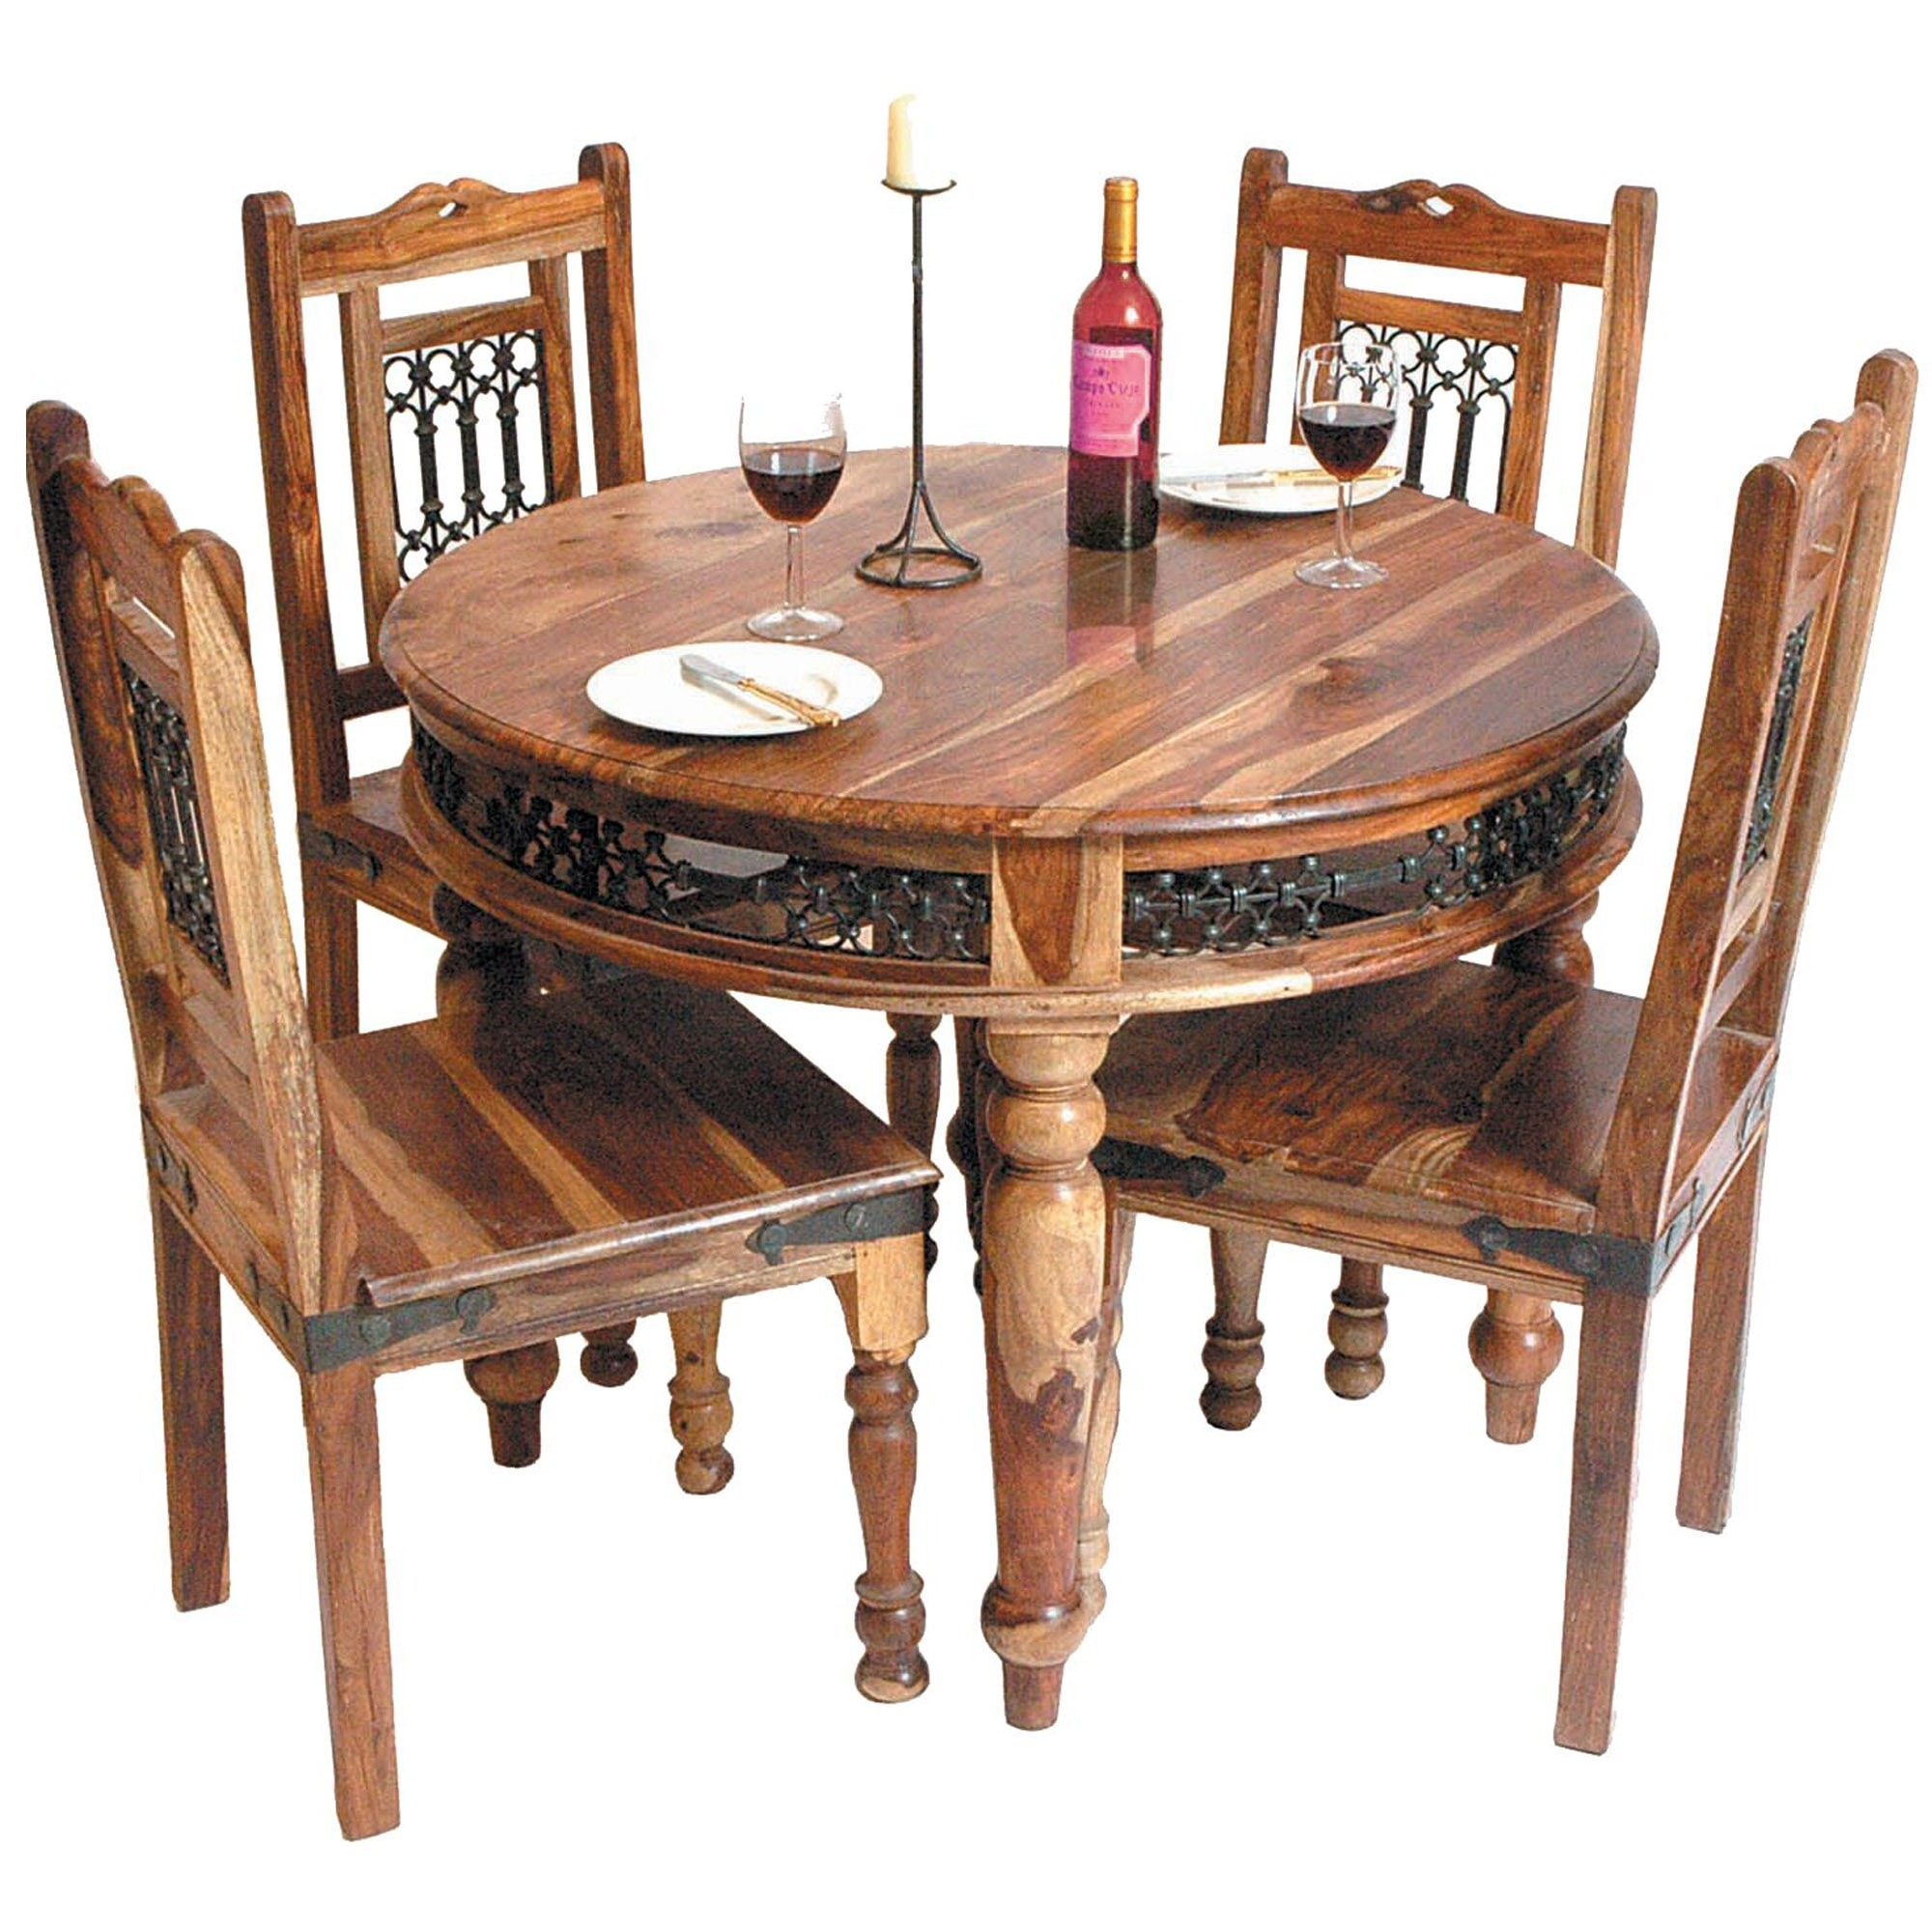 Round Wooden Indian Dining Table Wooden Dining Tables